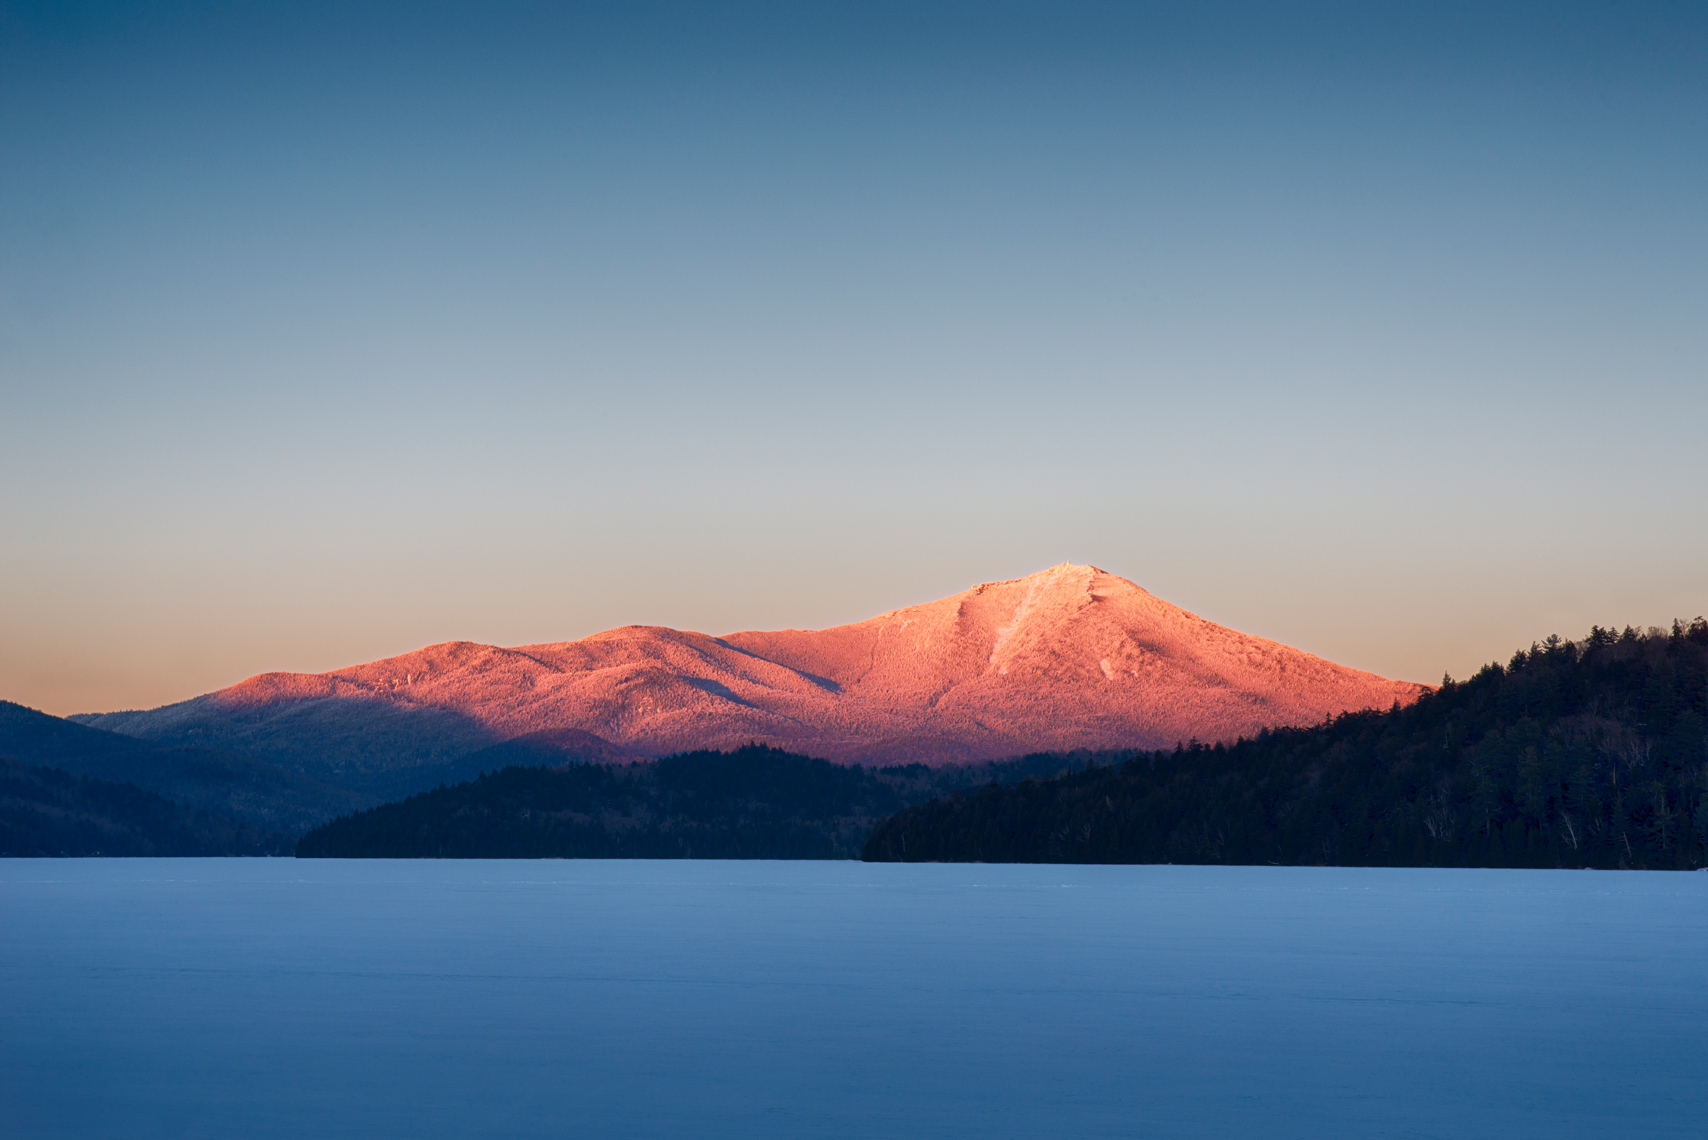 Alpenglow on Whiteface Mountain, Adirondack Mountains, New York